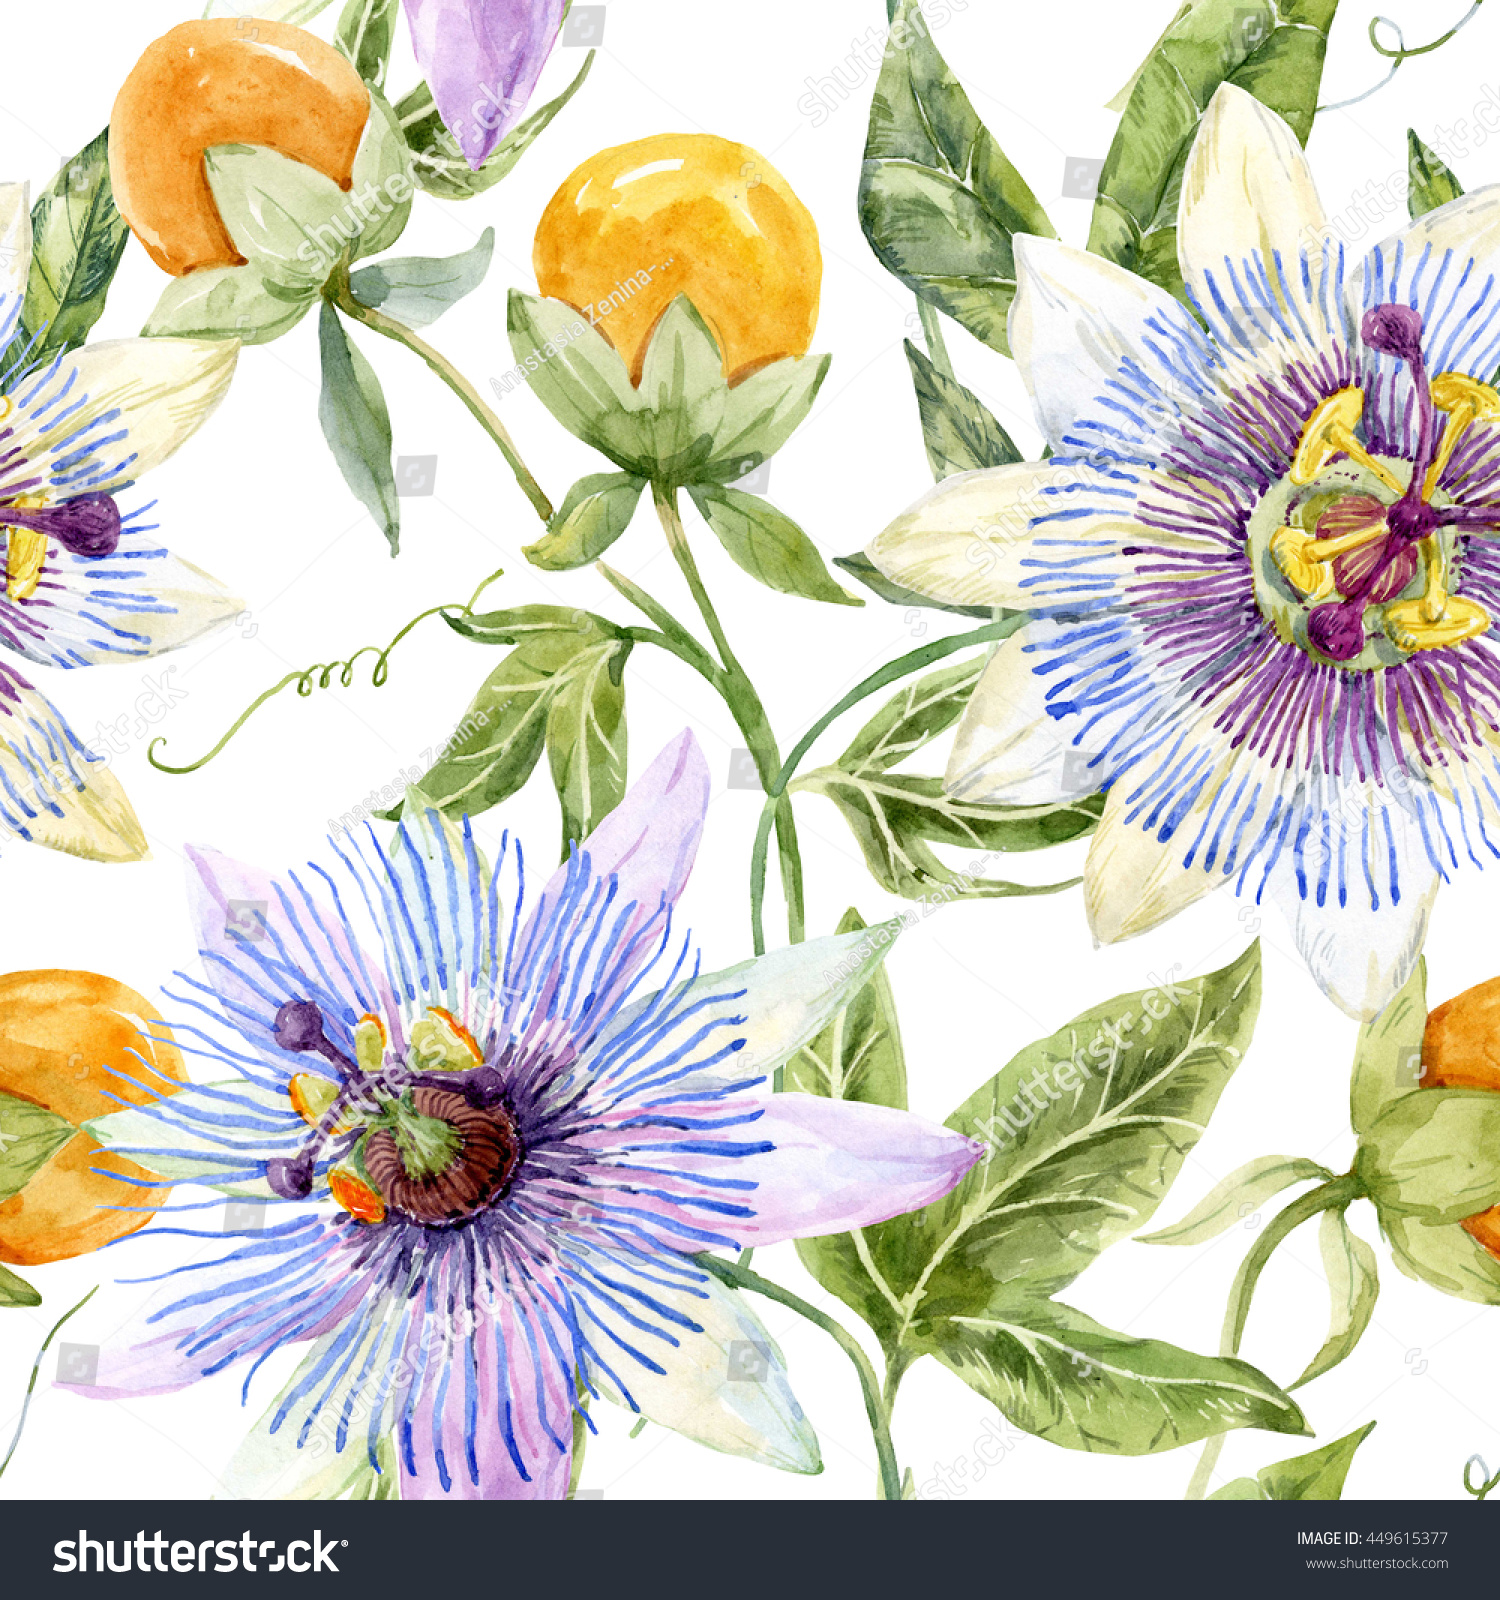 1500x1600 - Passion Flower Wallpapers 15